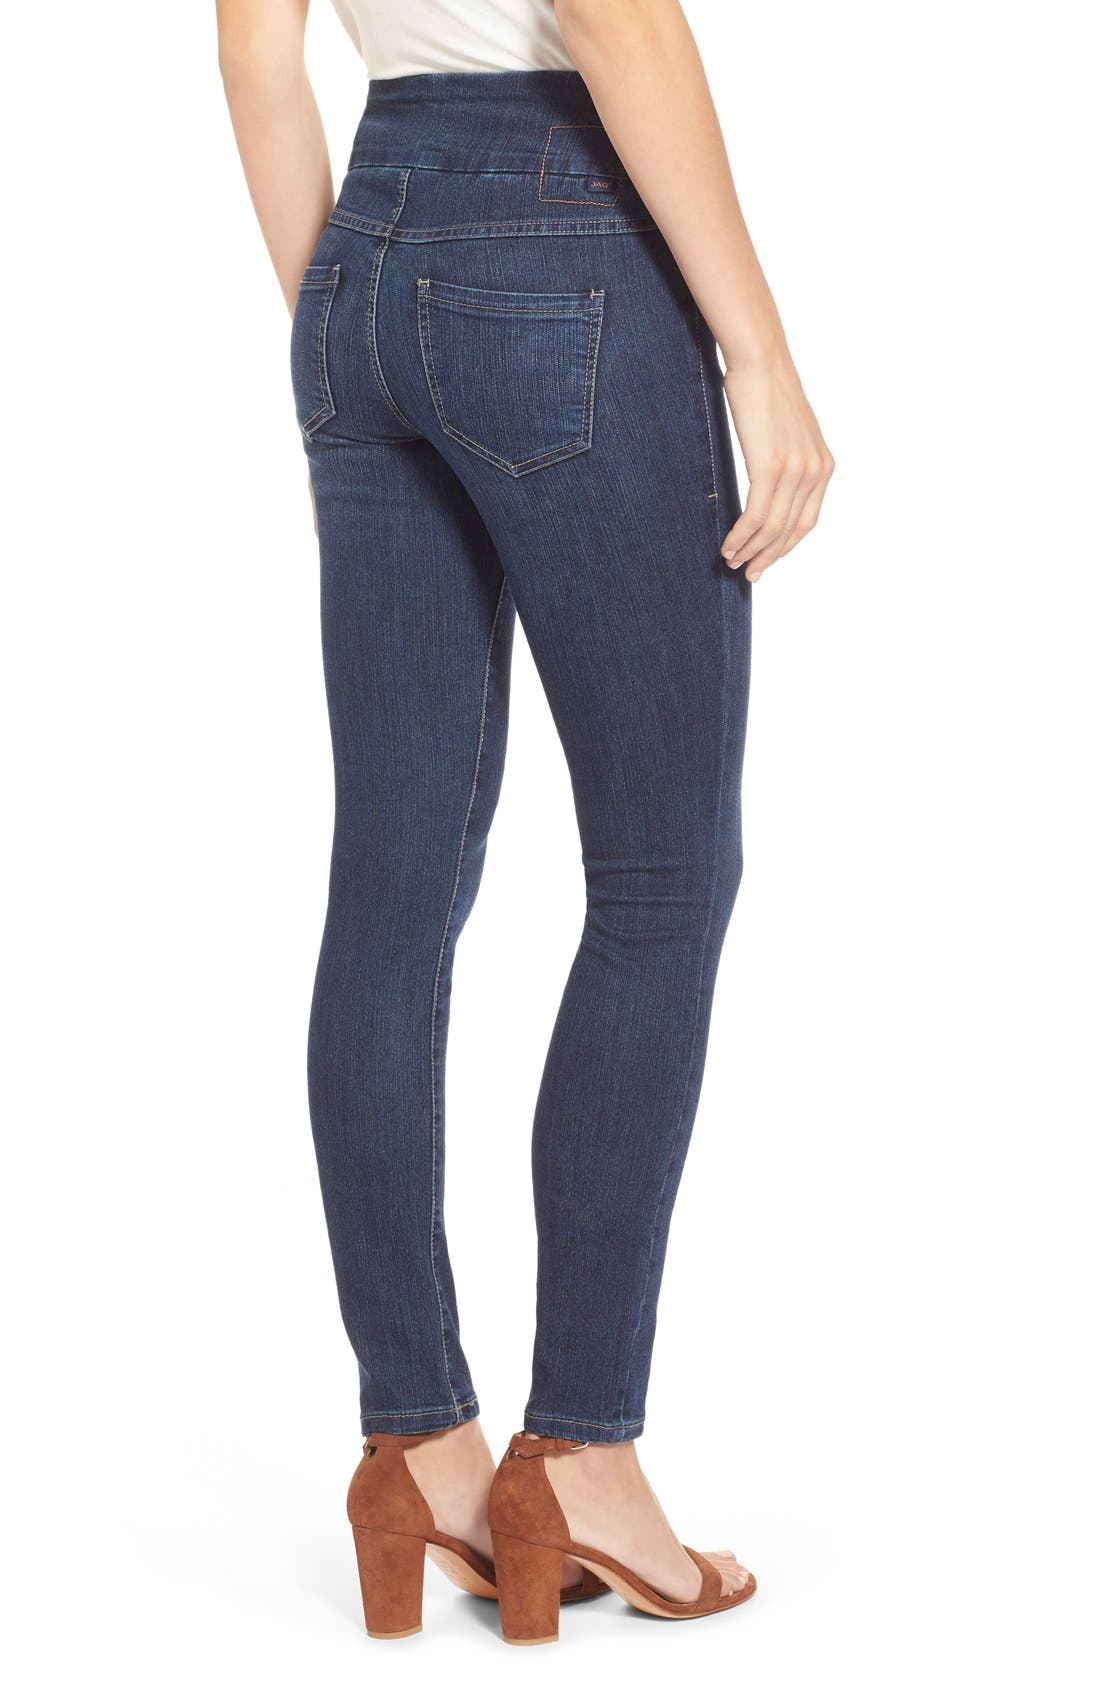 Alternate Image 2  - Jag Jeans 'Nora' Pull-On Stretch Skinny Jeans (Anchor Blue) (Regular & Petite)